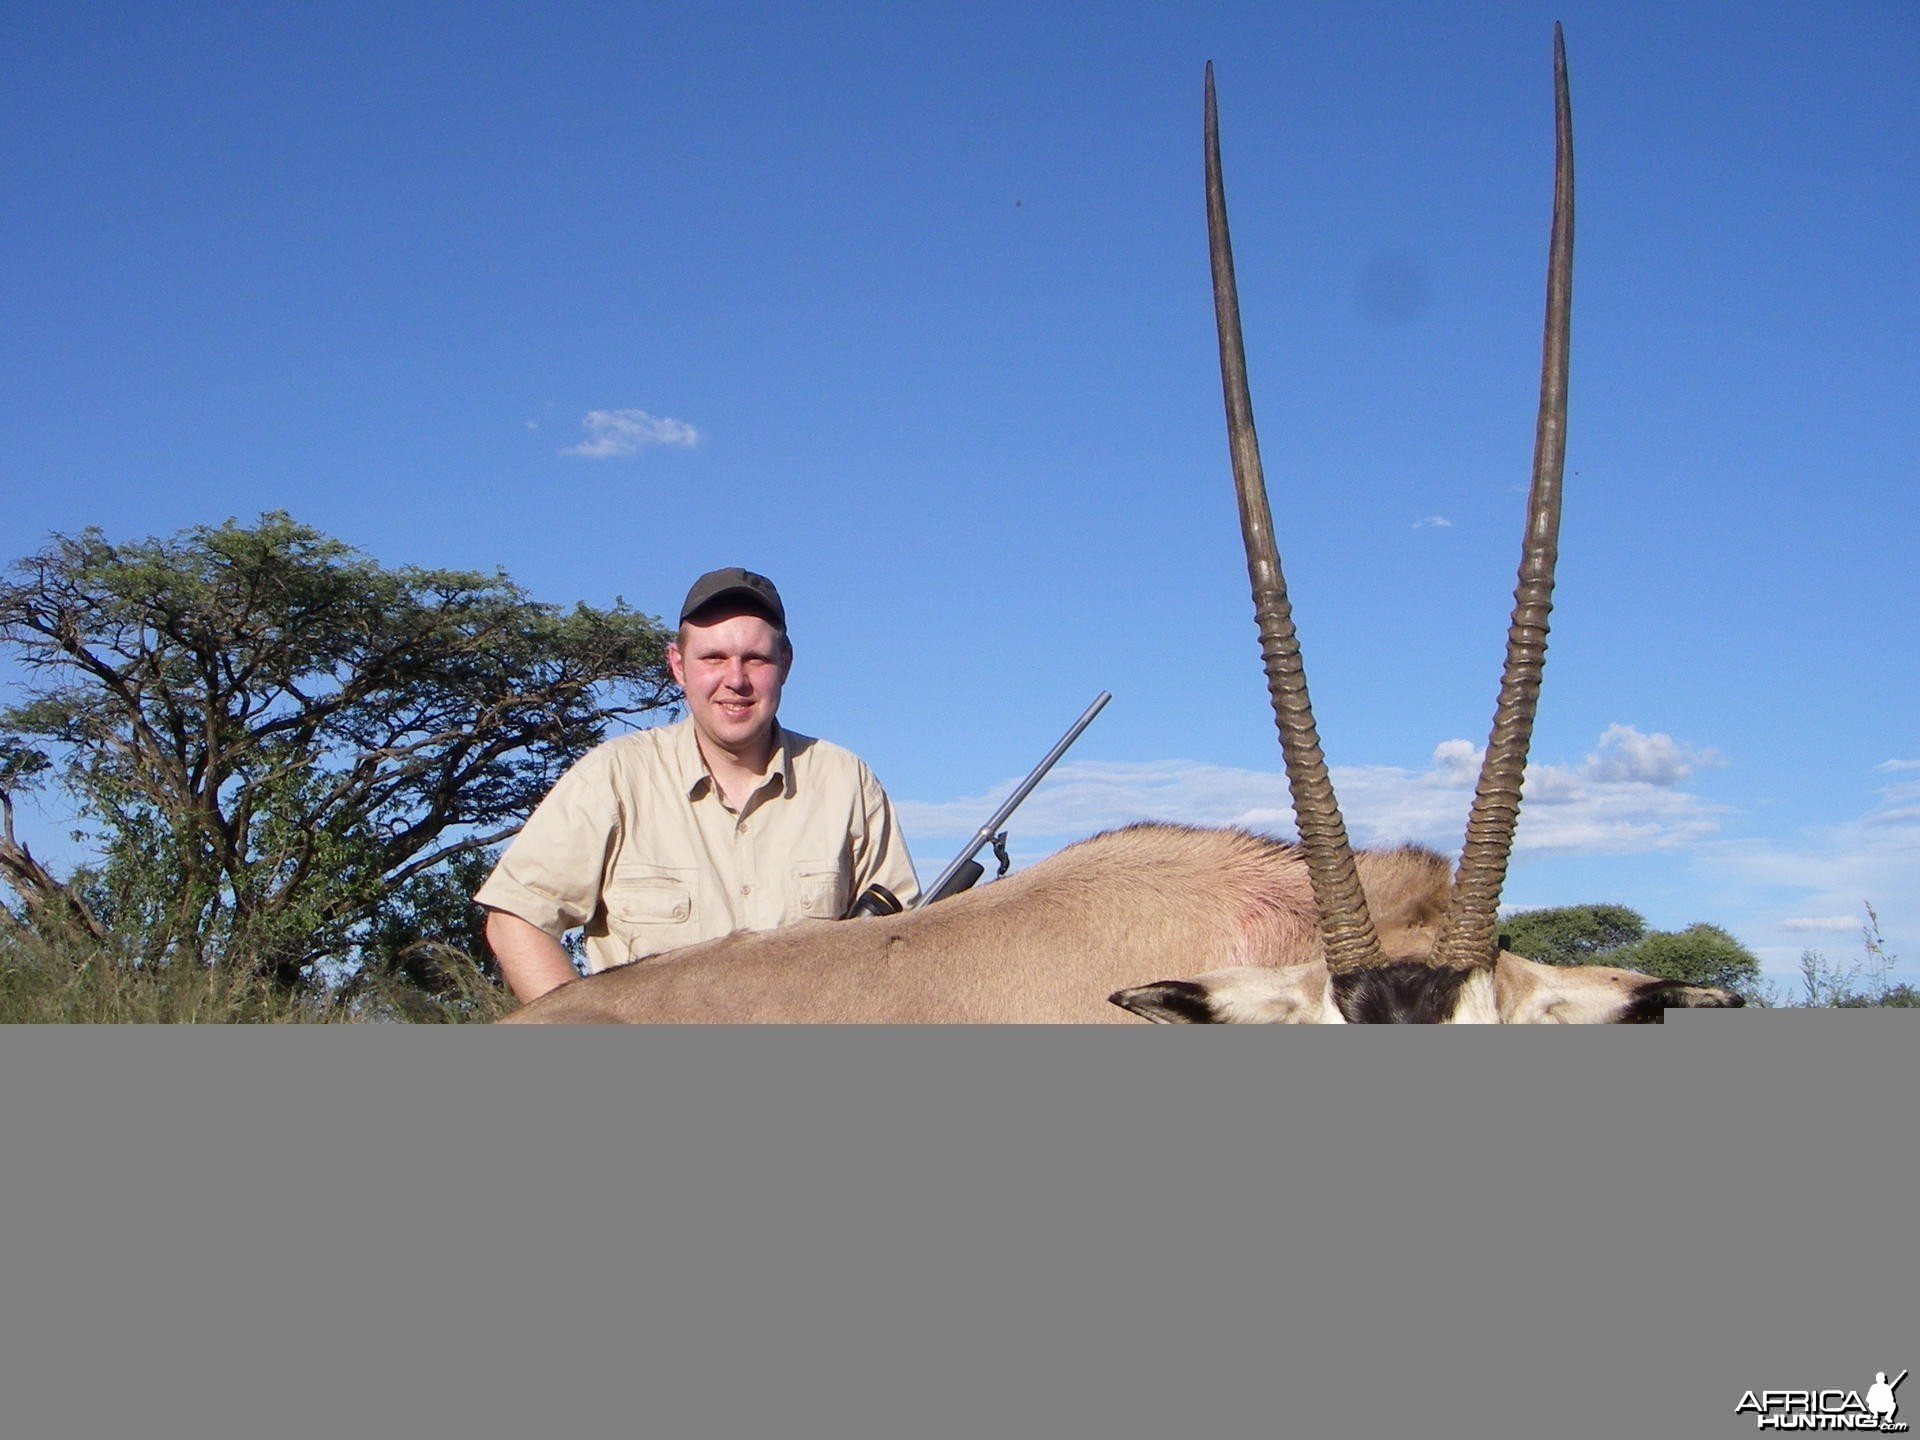 Gemsbok hunted in South Africa